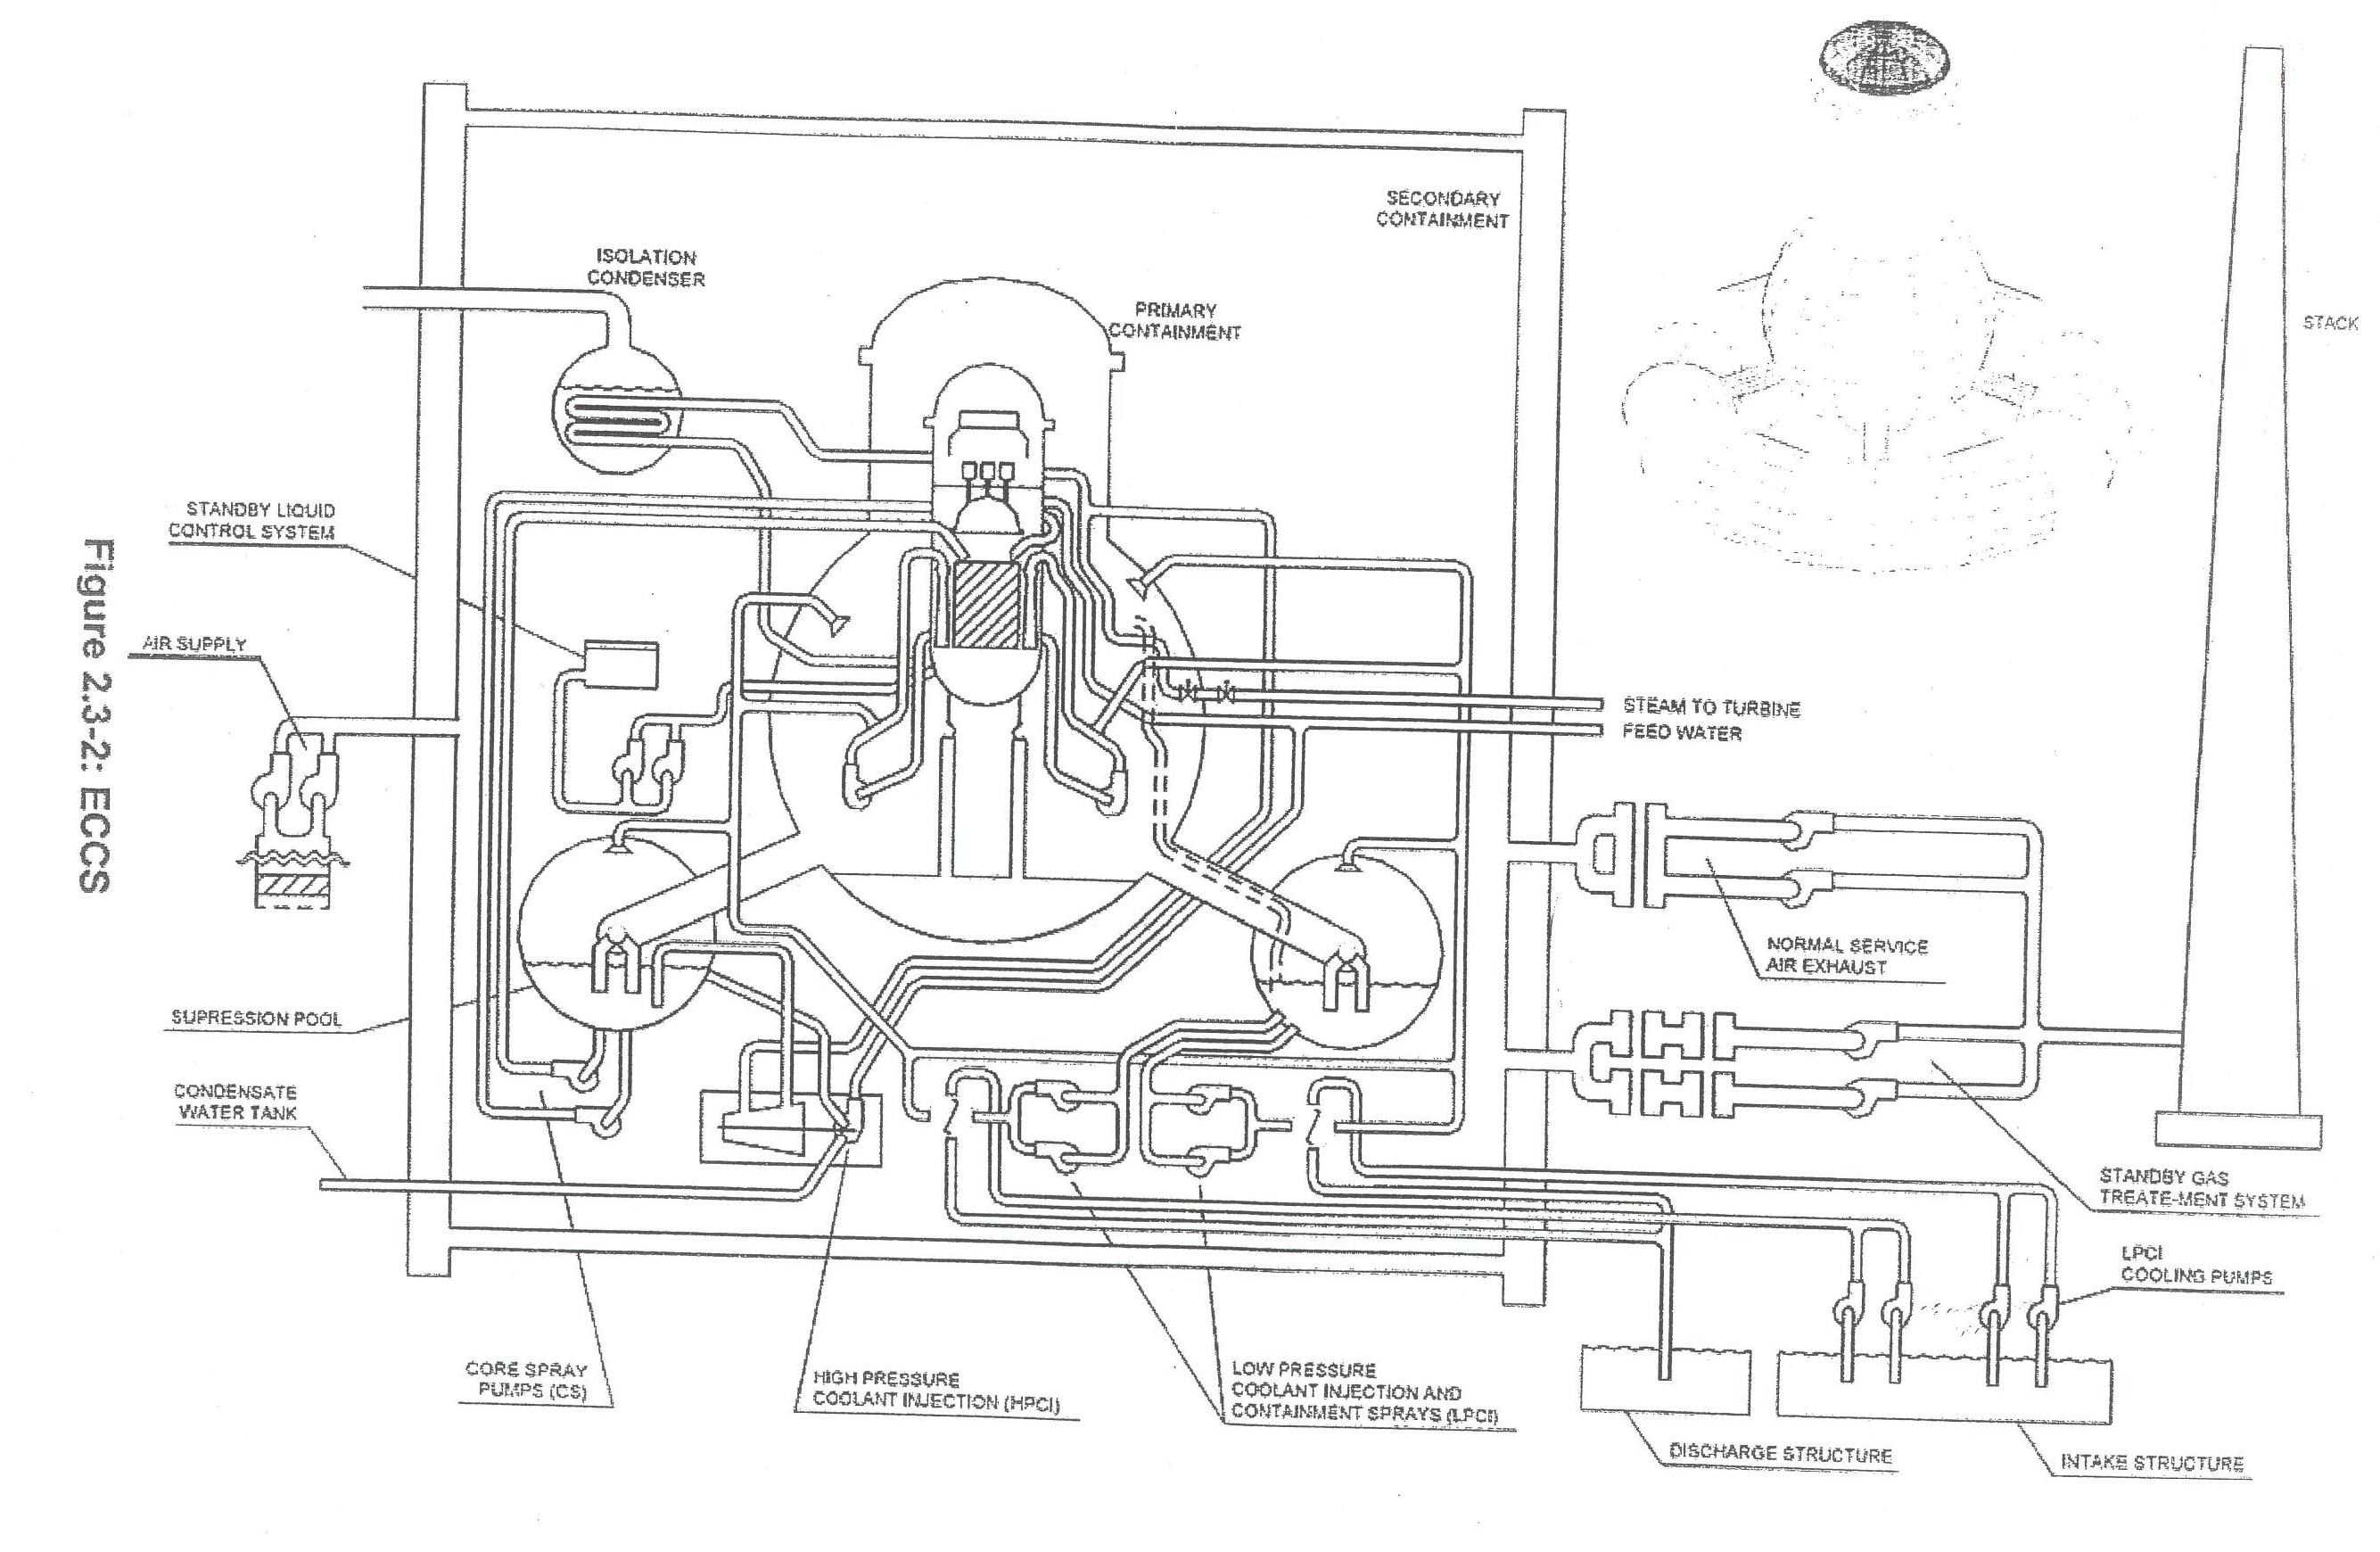 Ushima Nuclear Reactor Diagram, Ushima, Free Engine Image